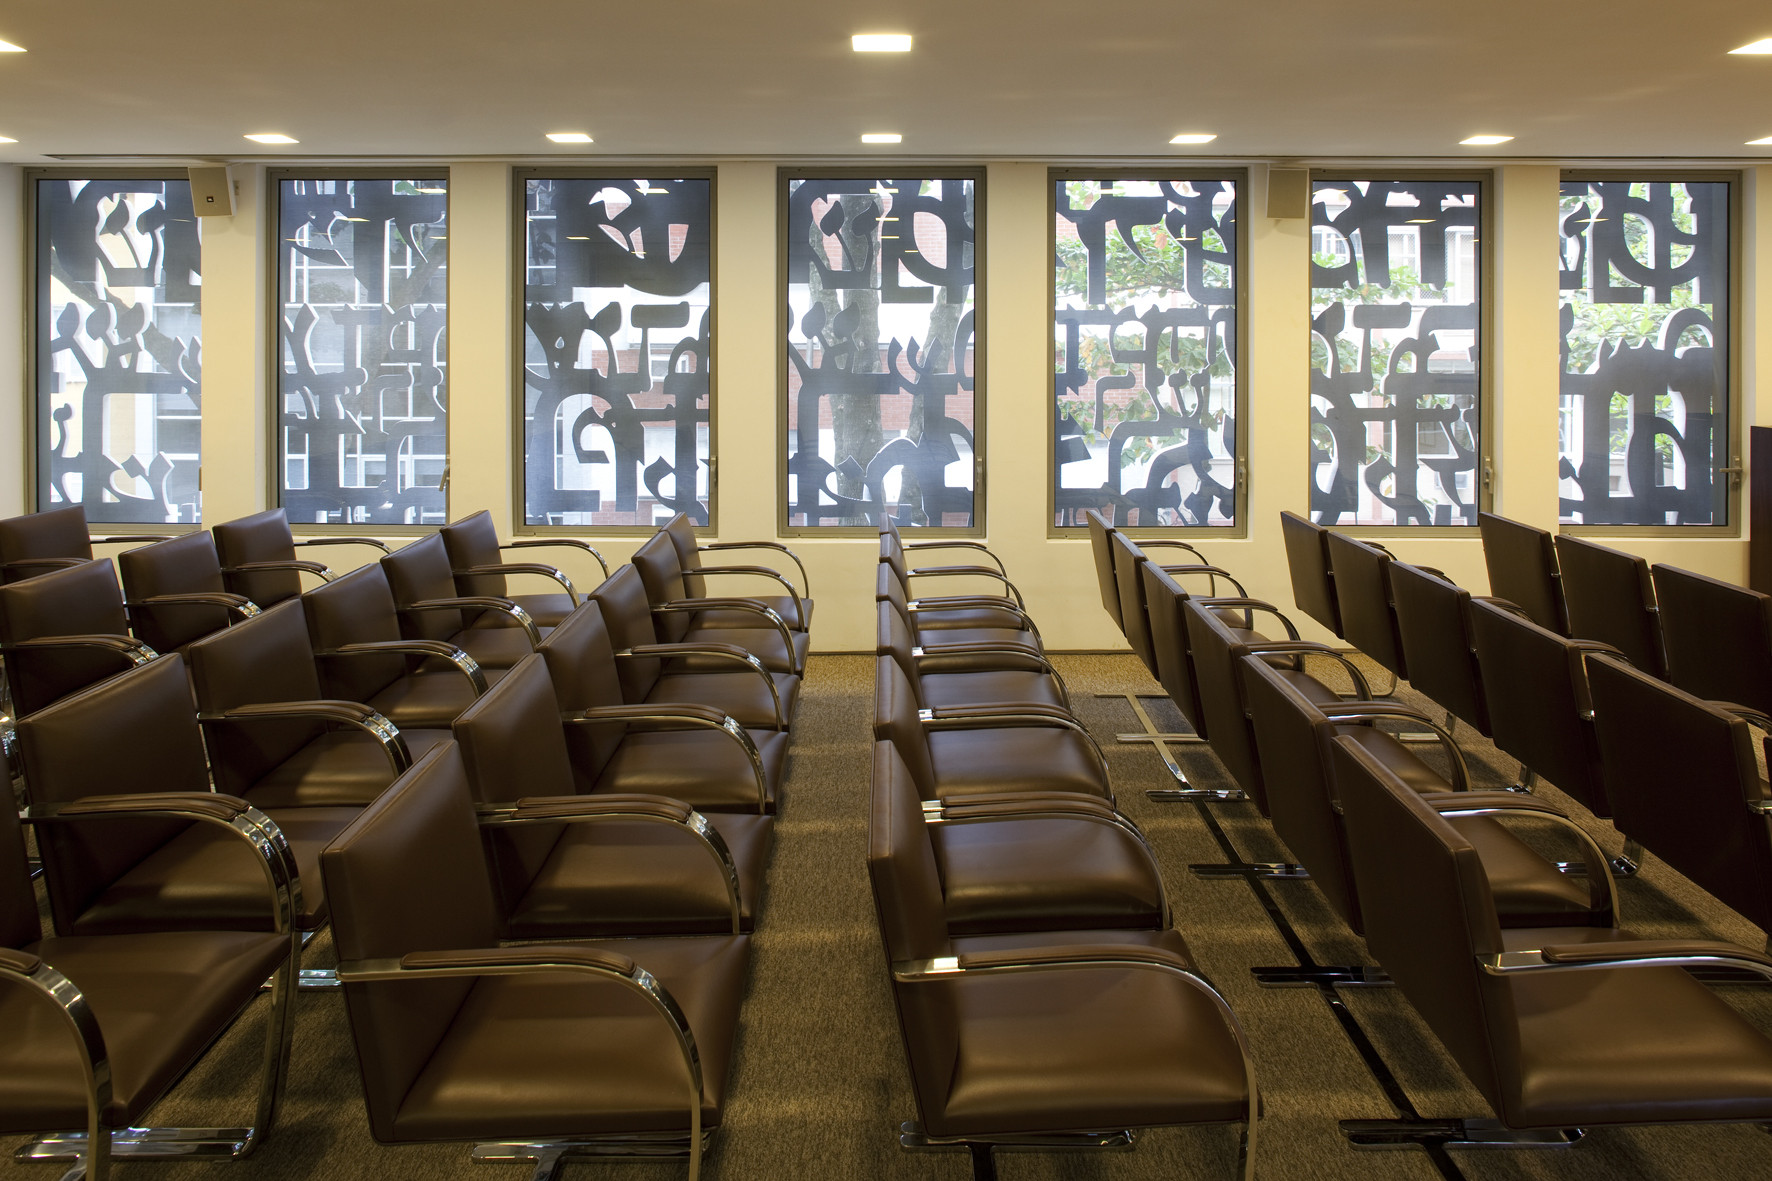 Transversal view of the seminar room of the second floor with th